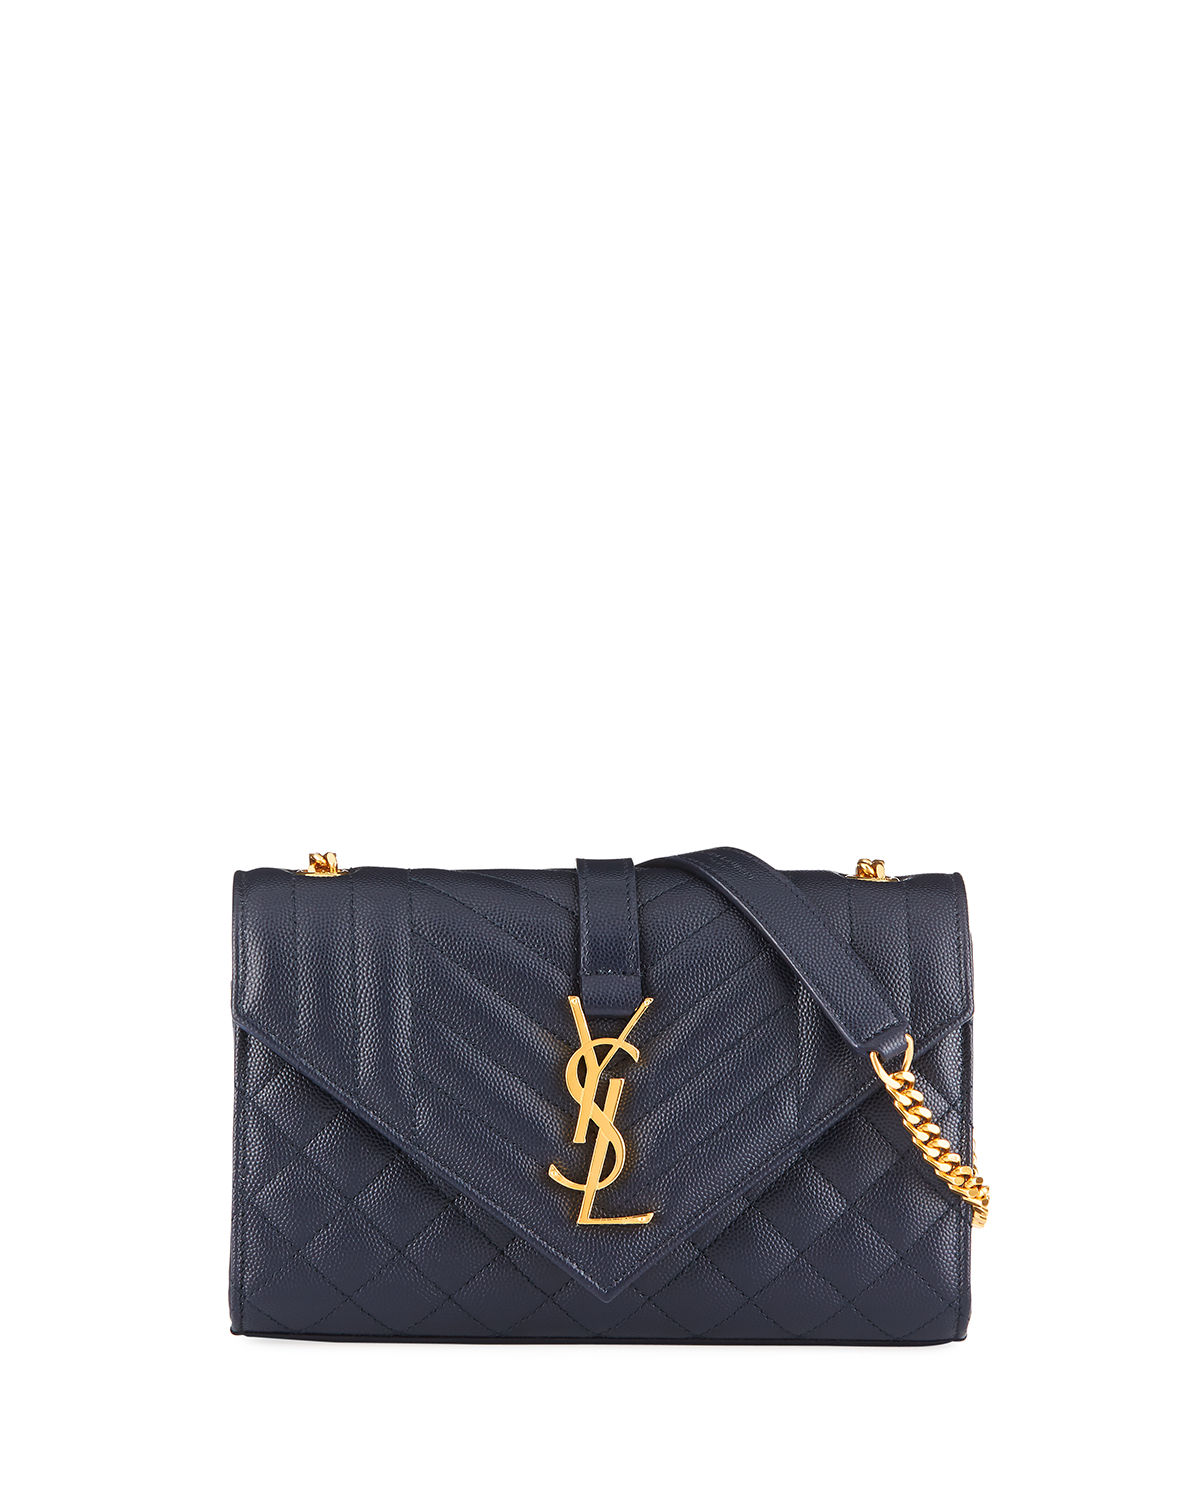 Saint LaurentMonogram YSL Envelope Small Chain Shoulder Bag - Golden  Hardware 30a8fac96a